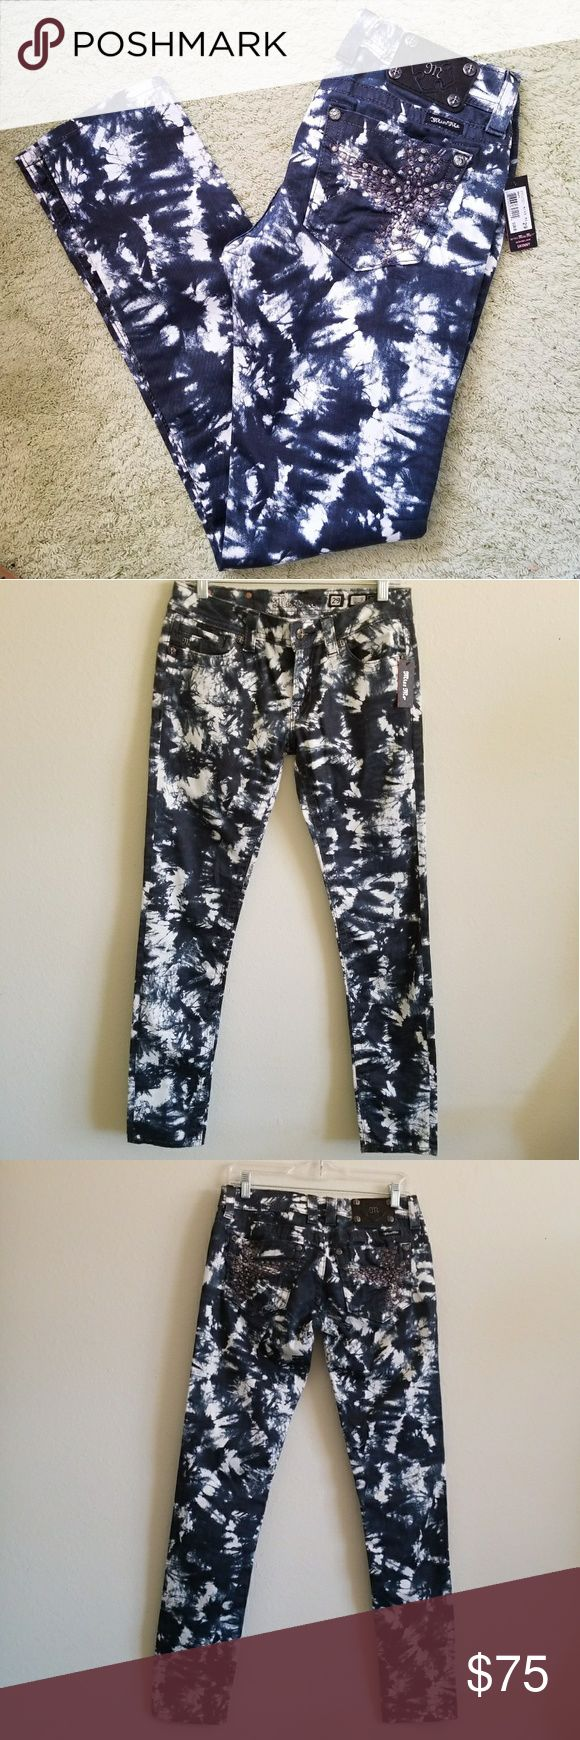 Miss Me - Tie dyed Navy & White Skinny Jeans, 29 These are brand new with tags.  **Pictures taken with and without flash.**  Miss Me Skinny Jeans. Style JP5117S27 They are navy and white tie dye look. Back pockets have​ embroidery with Rhinestone detail.  29 in waist, 32 in inseam, 8 in rise Miss Me Jeans